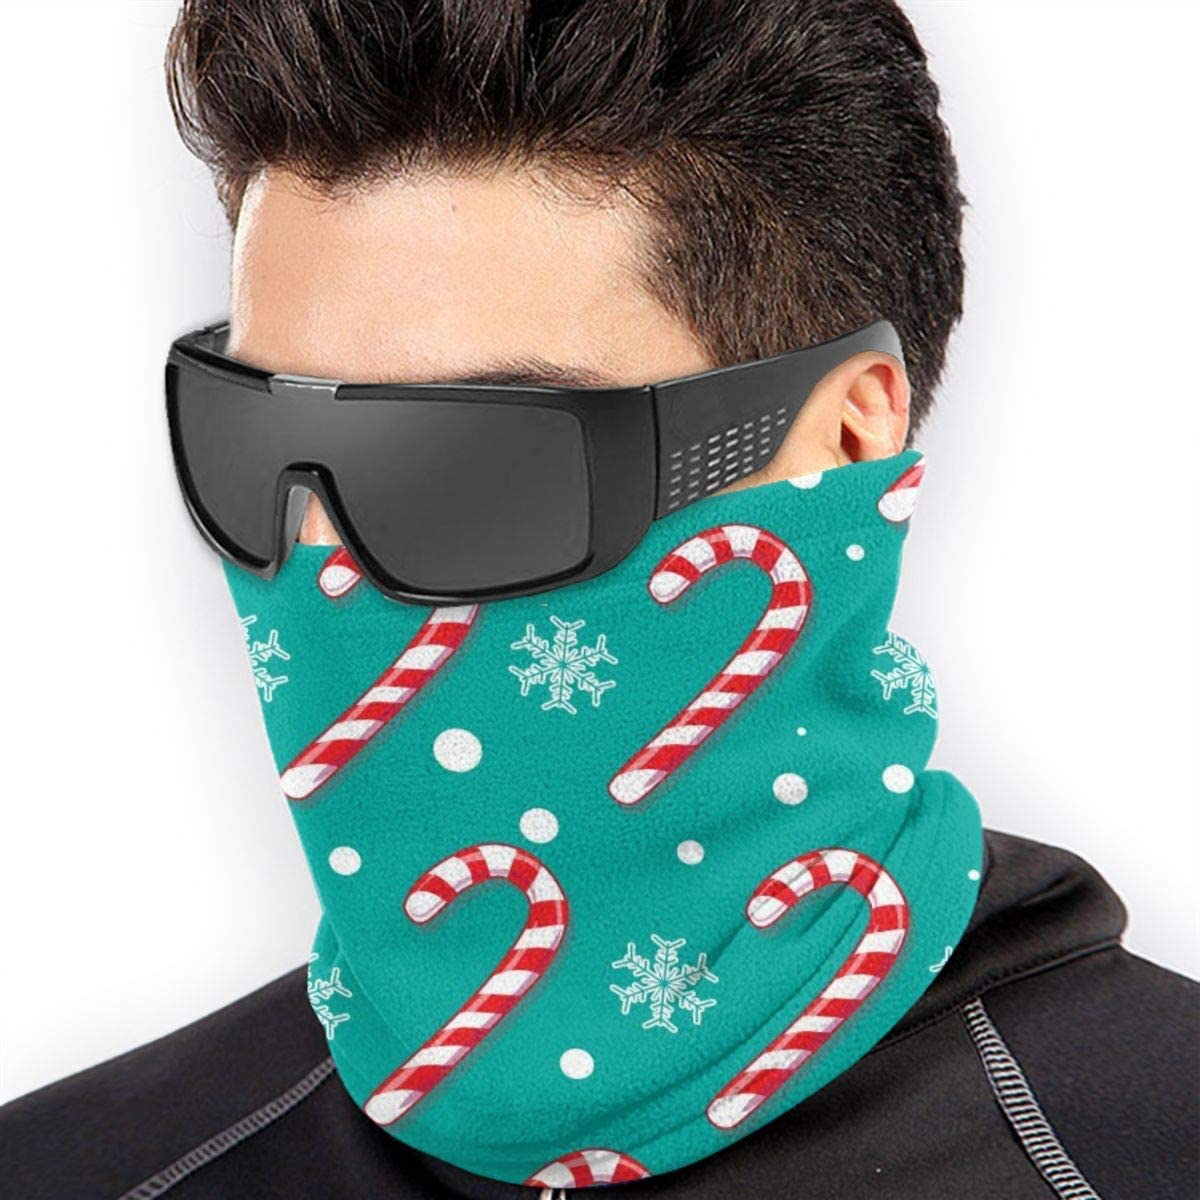 Microfiber Neck Warmer Christmas Blue Candy Cane Neck Gaiter Tube Ear Warmer Headband Scarf Face Mask Balaclava